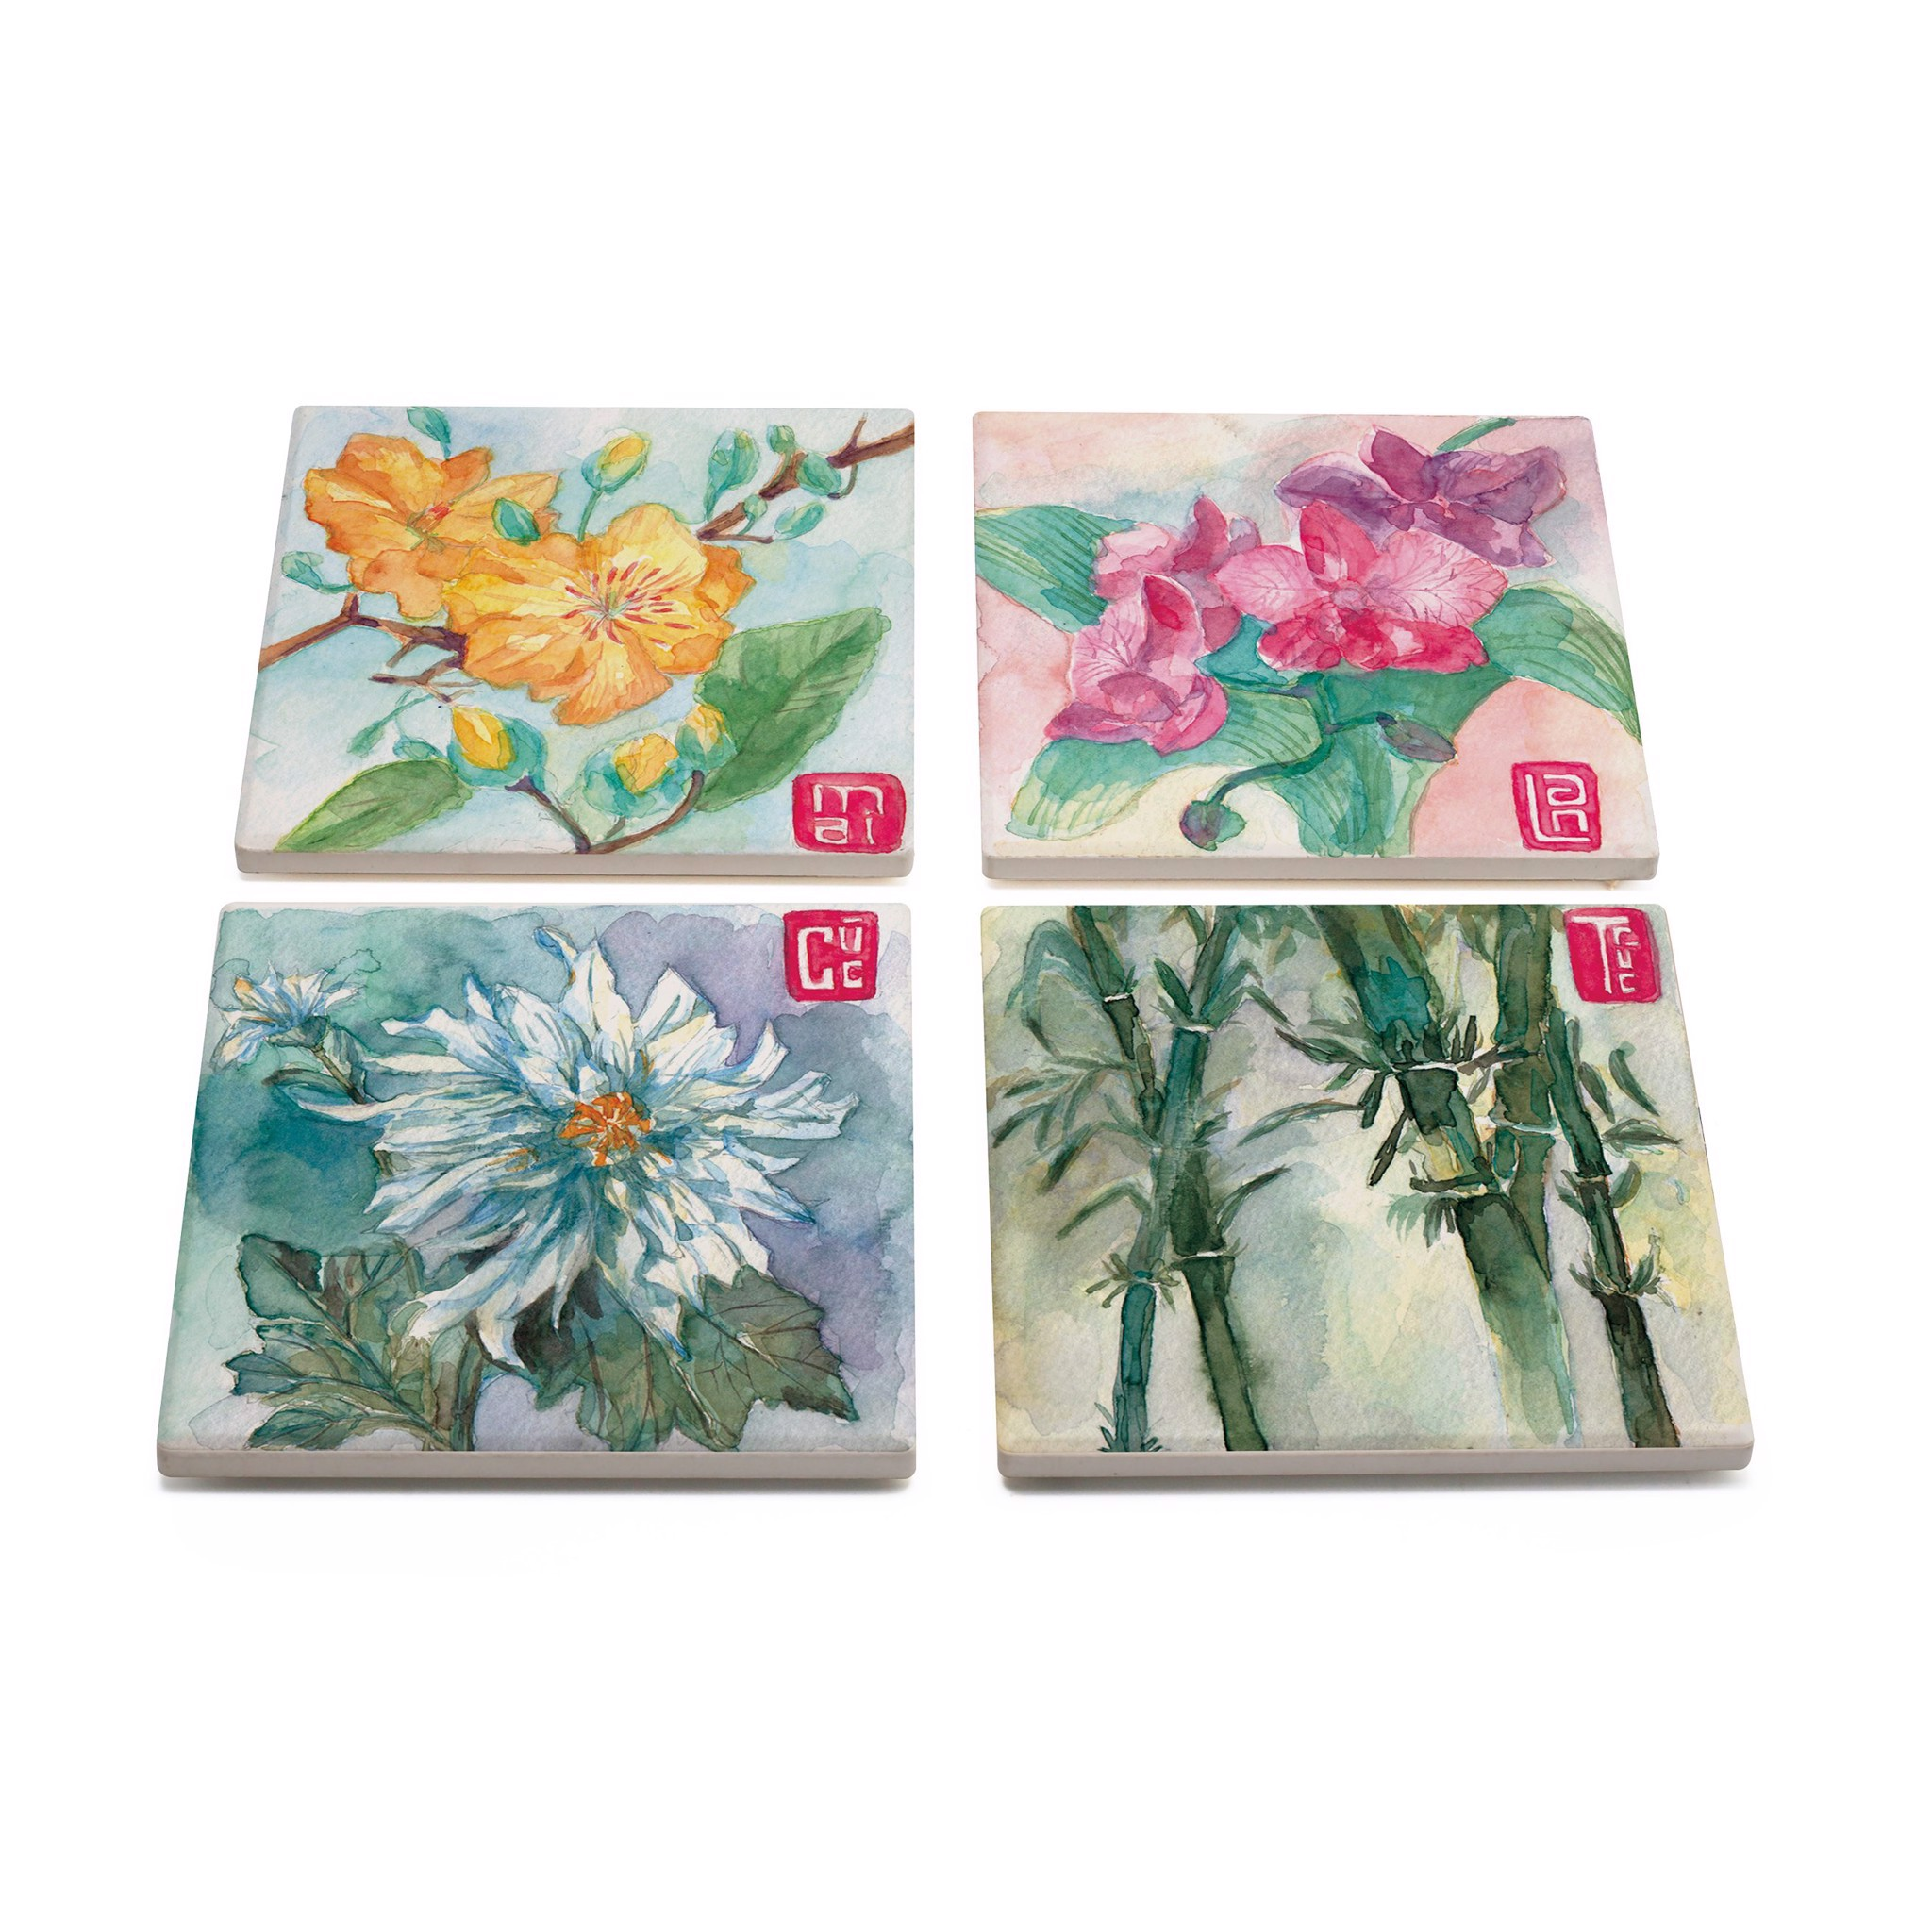 Set Lót Ly Gốm Vuông - Flower Of Vietnam // Set Square Coaster Flowers of Vietnam